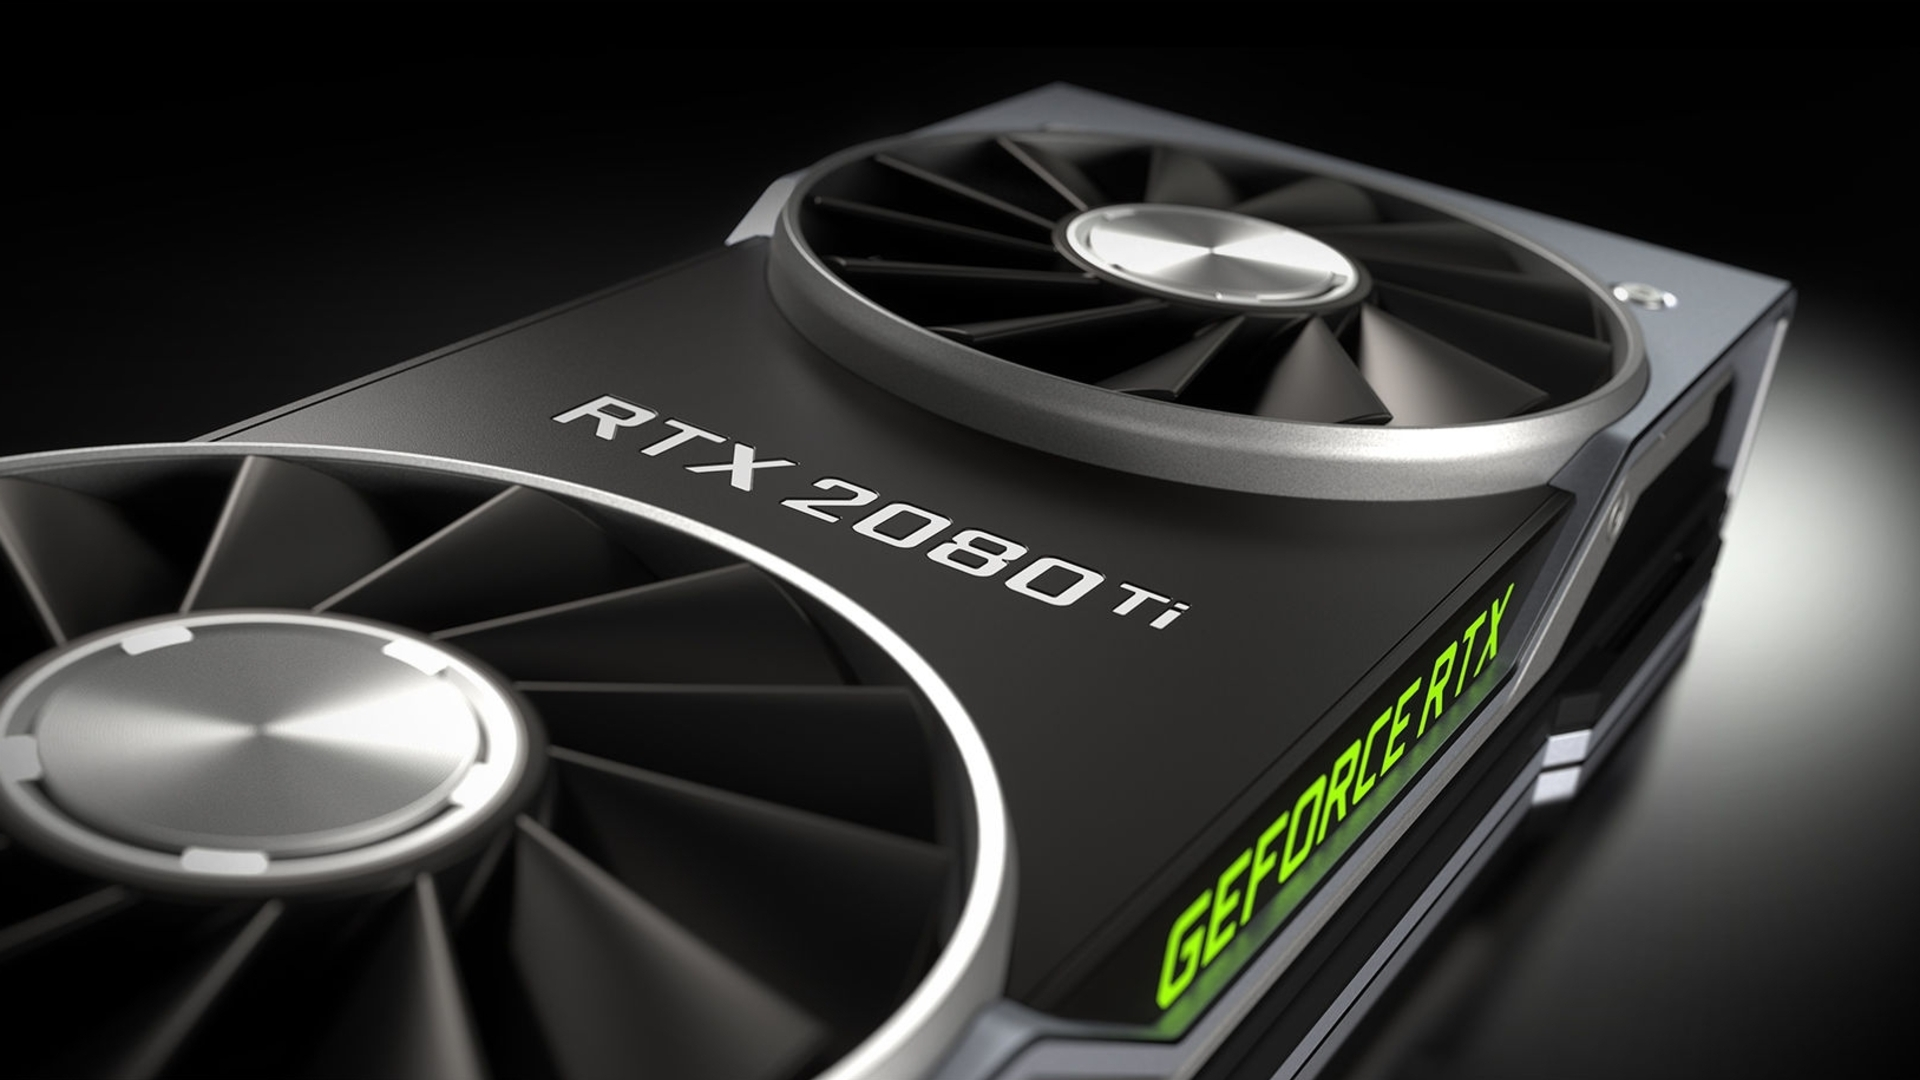 Nvidia unveils new Turing architecture - Latest News - Blender